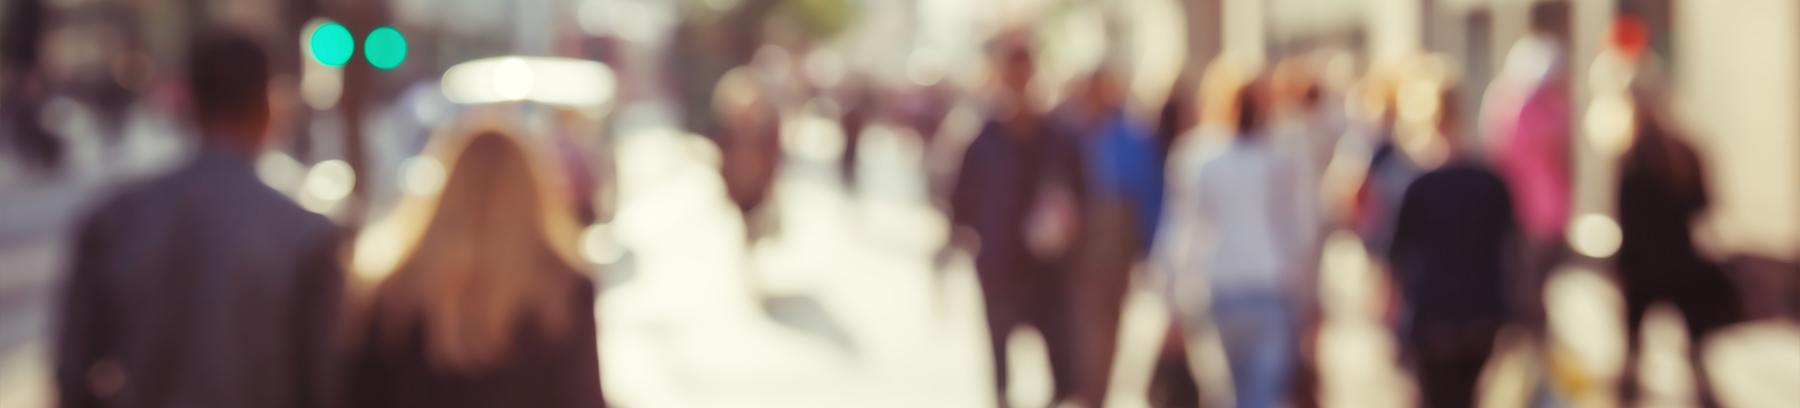 Blurred image of people walking on the street.